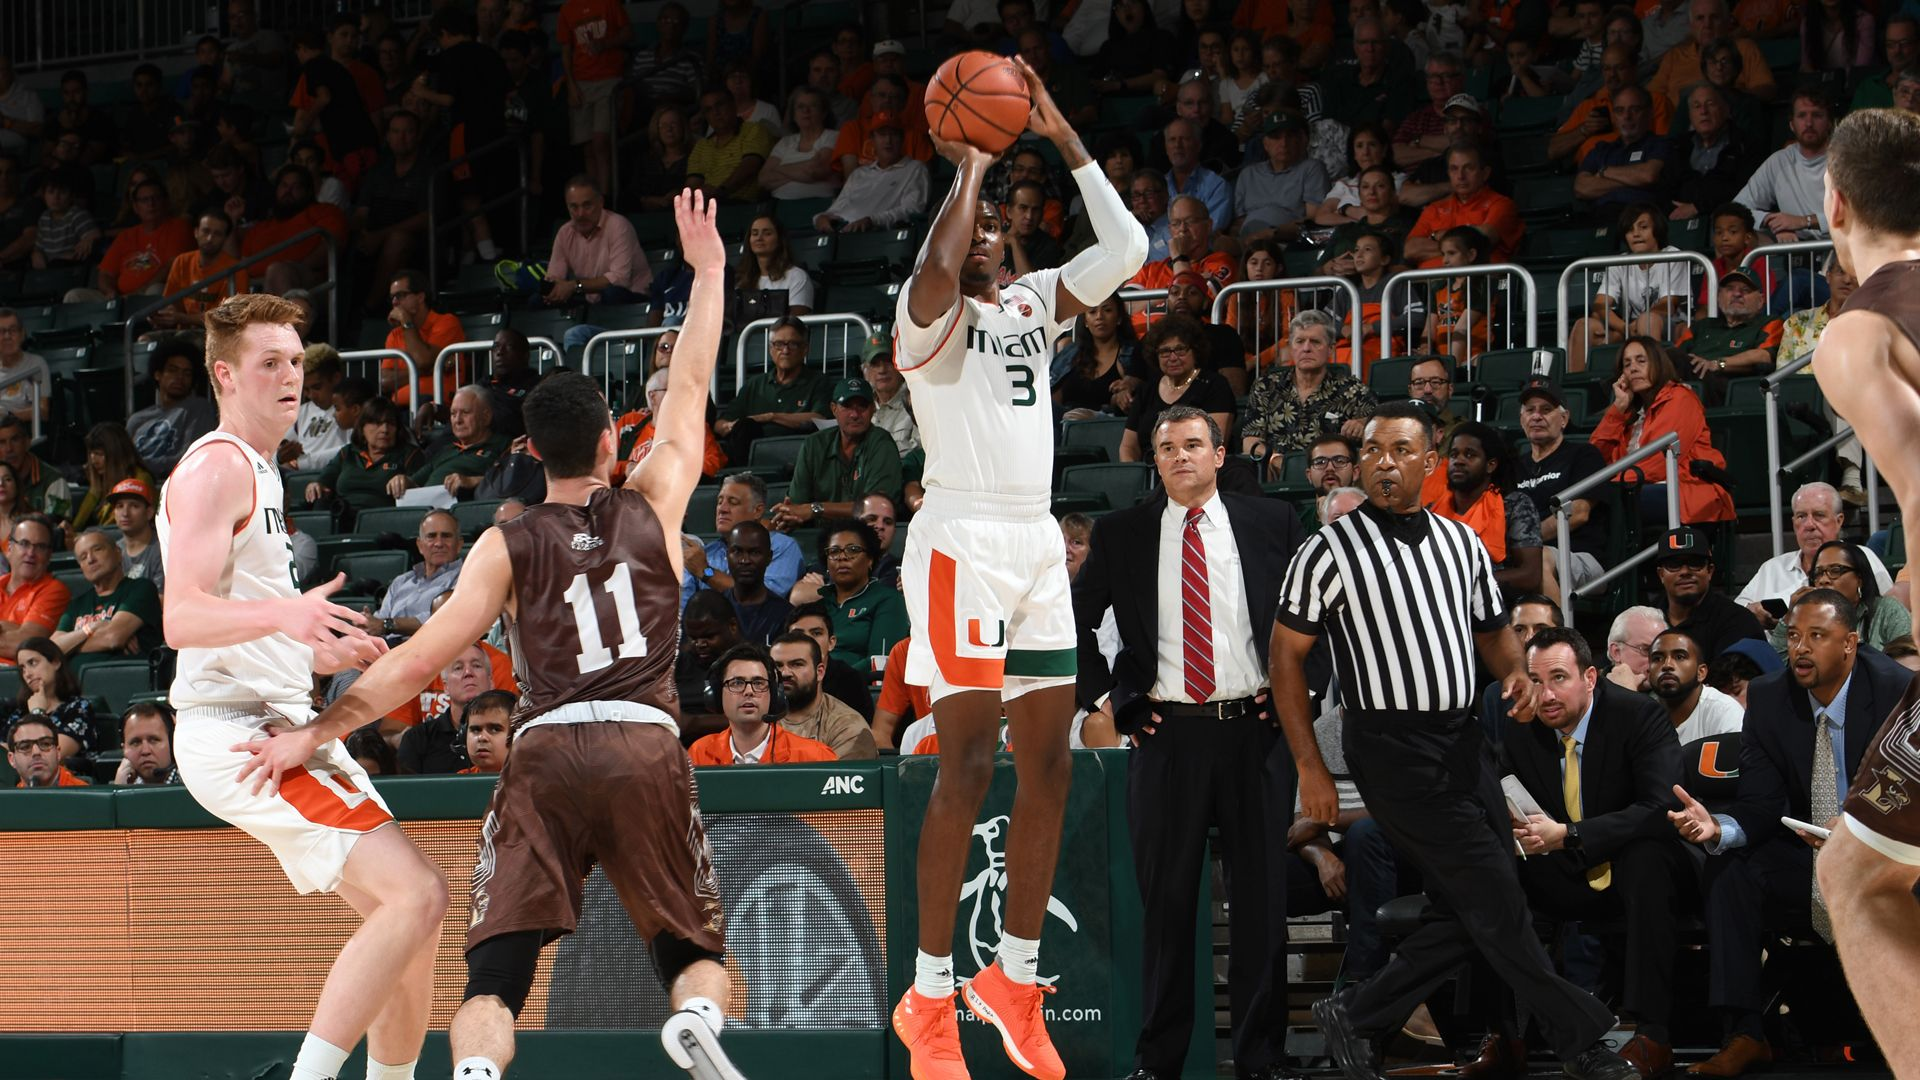 Canes Storm Past Mountain Hawks, 83-62